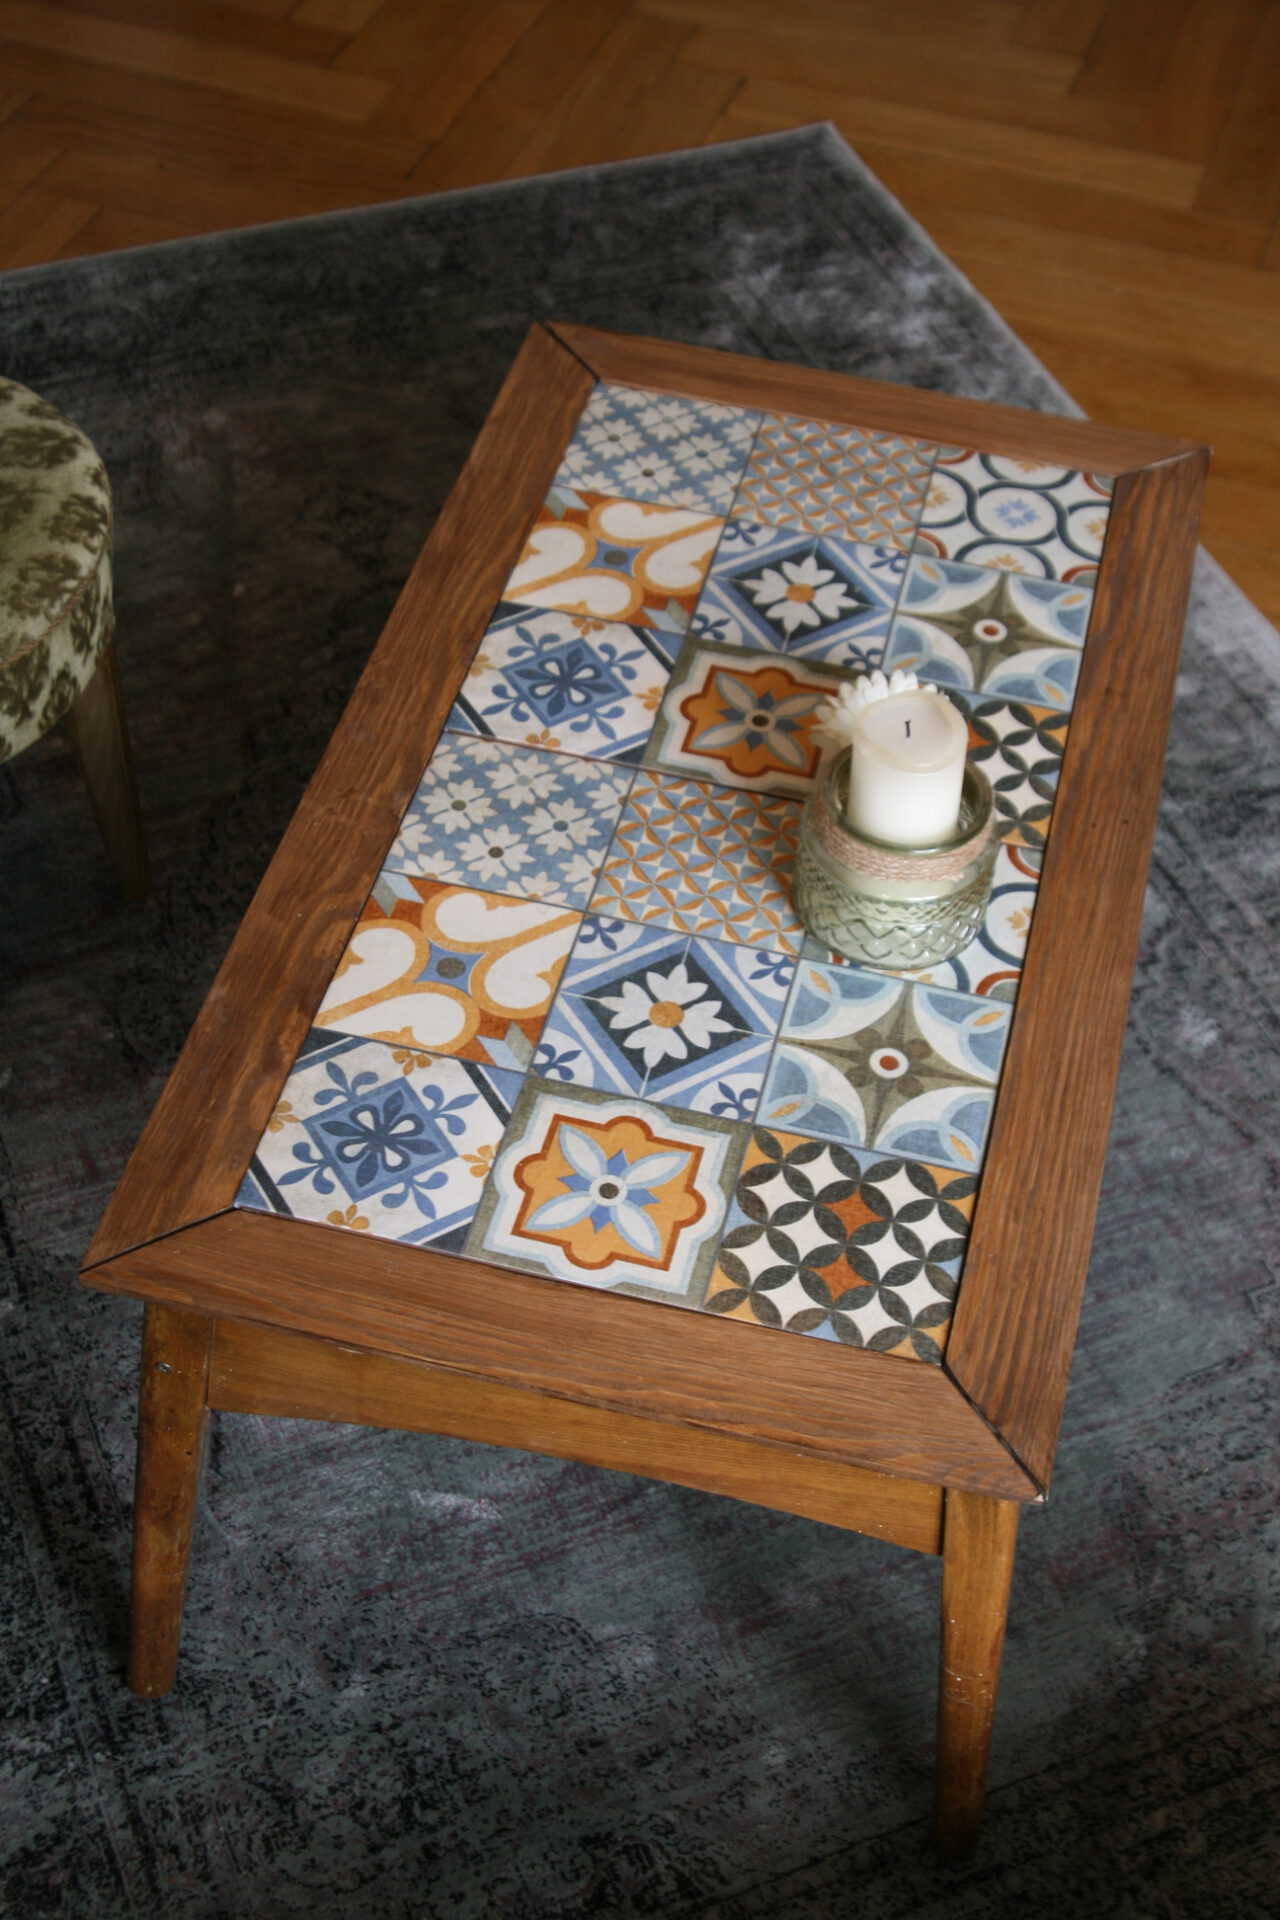 Boho Möbel Upcycling: Boho Couchtisch - Wild At Heart And Free In Mind